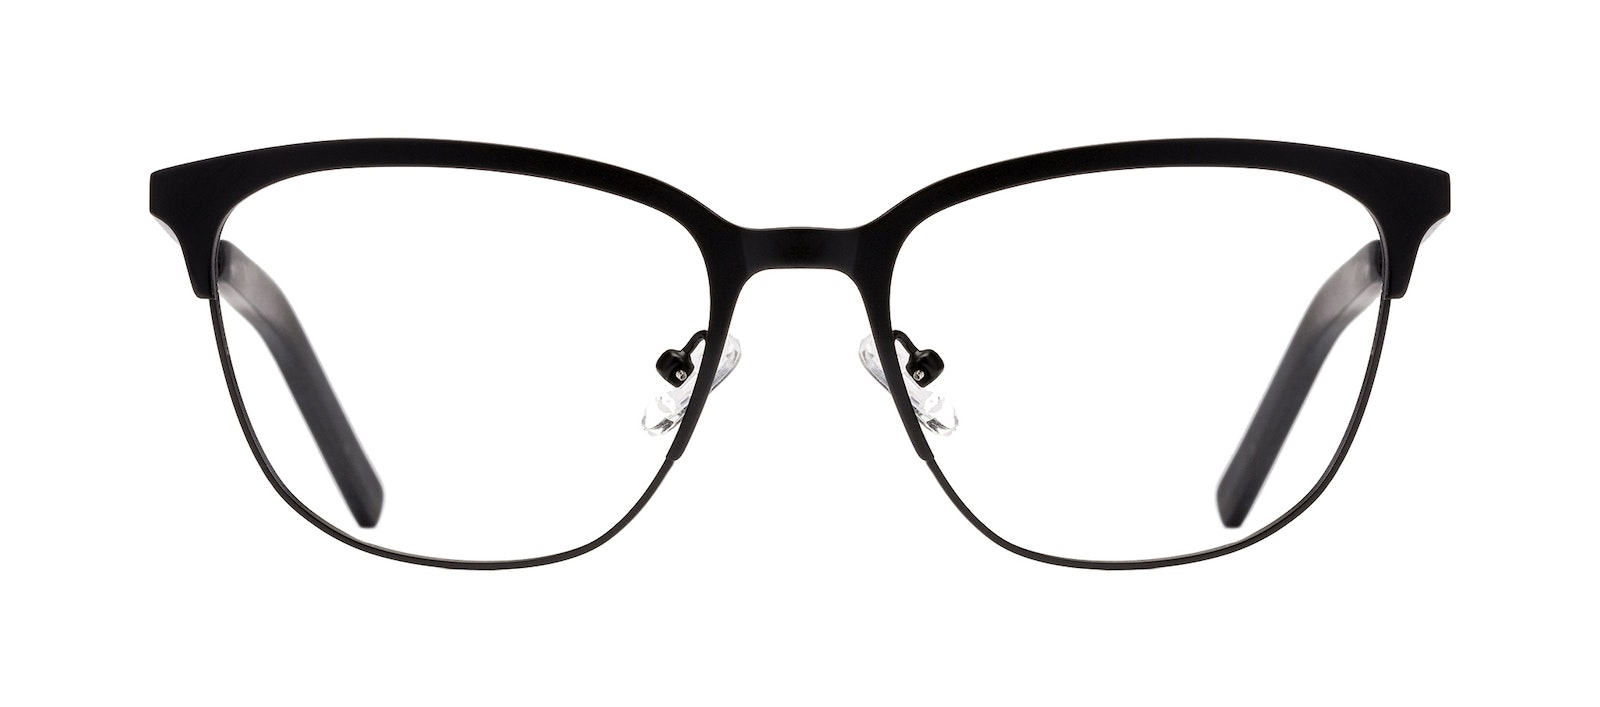 Affordable Fashion Glasses Rectangle Eyeglasses Men Legacy Black Front